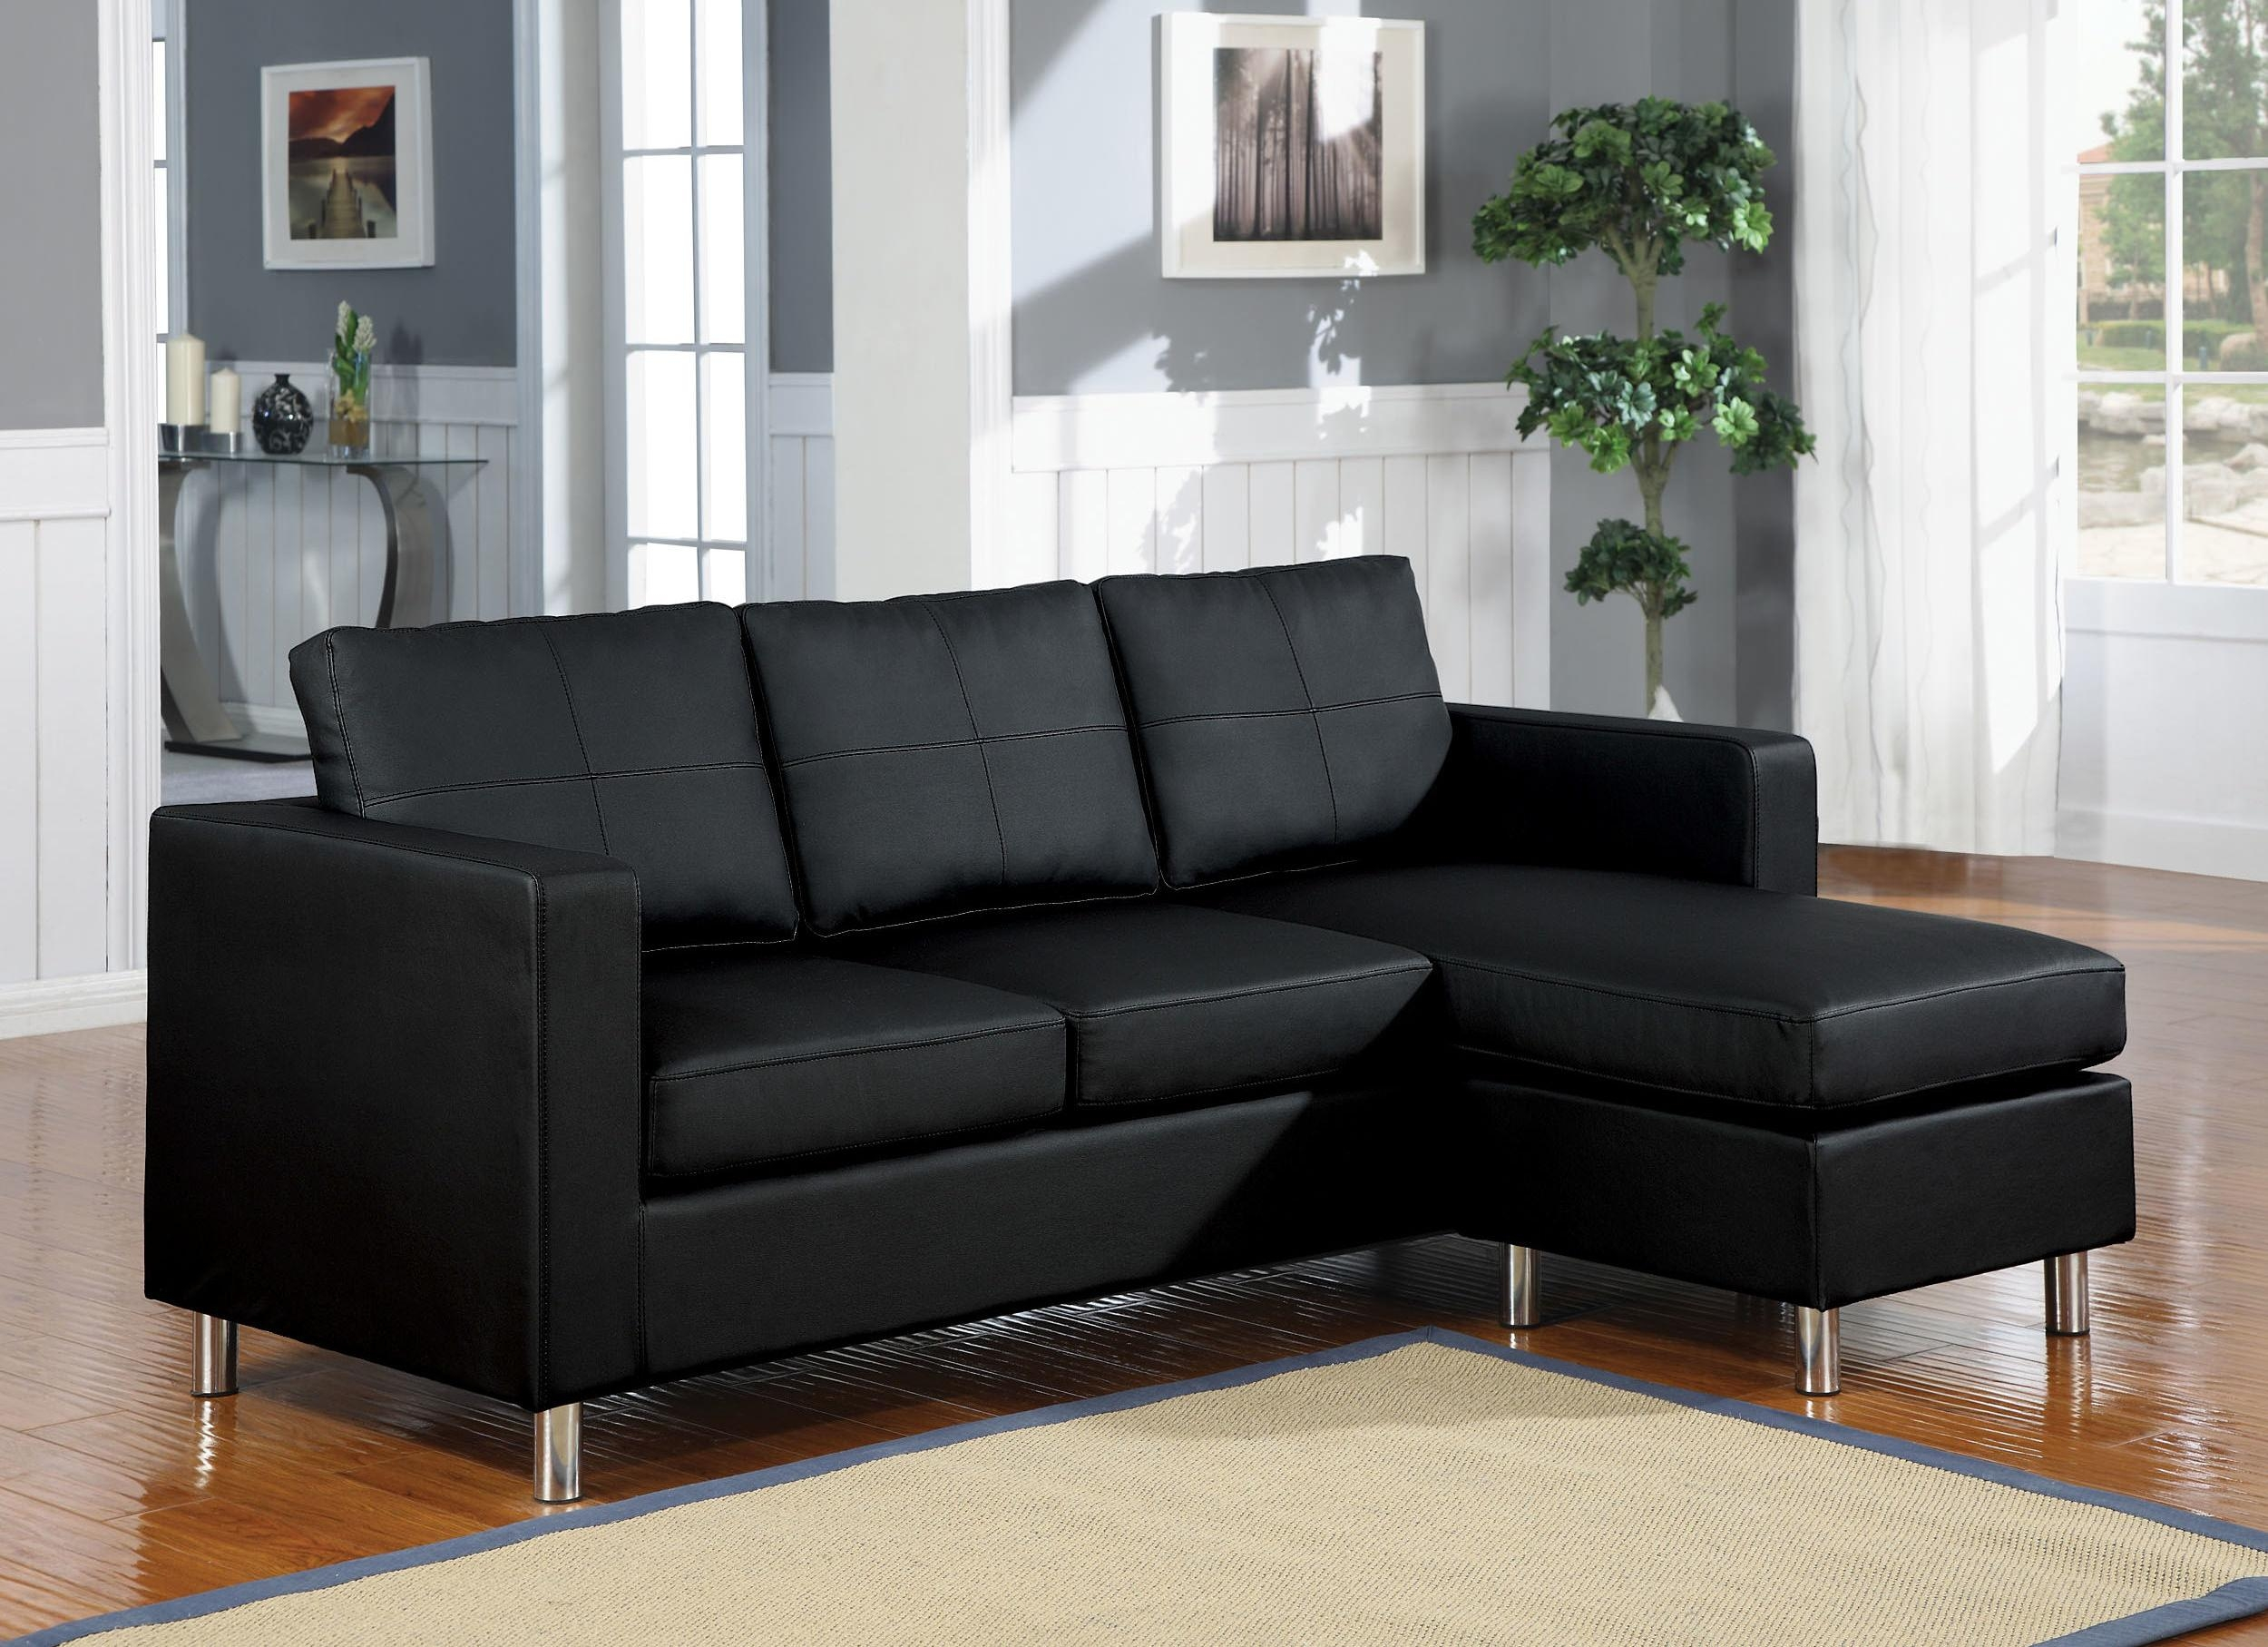 Cloud Sectional Sofa | Sofa Gallery | Kengire With Cloud Sectional Sofas (View 8 of 20)